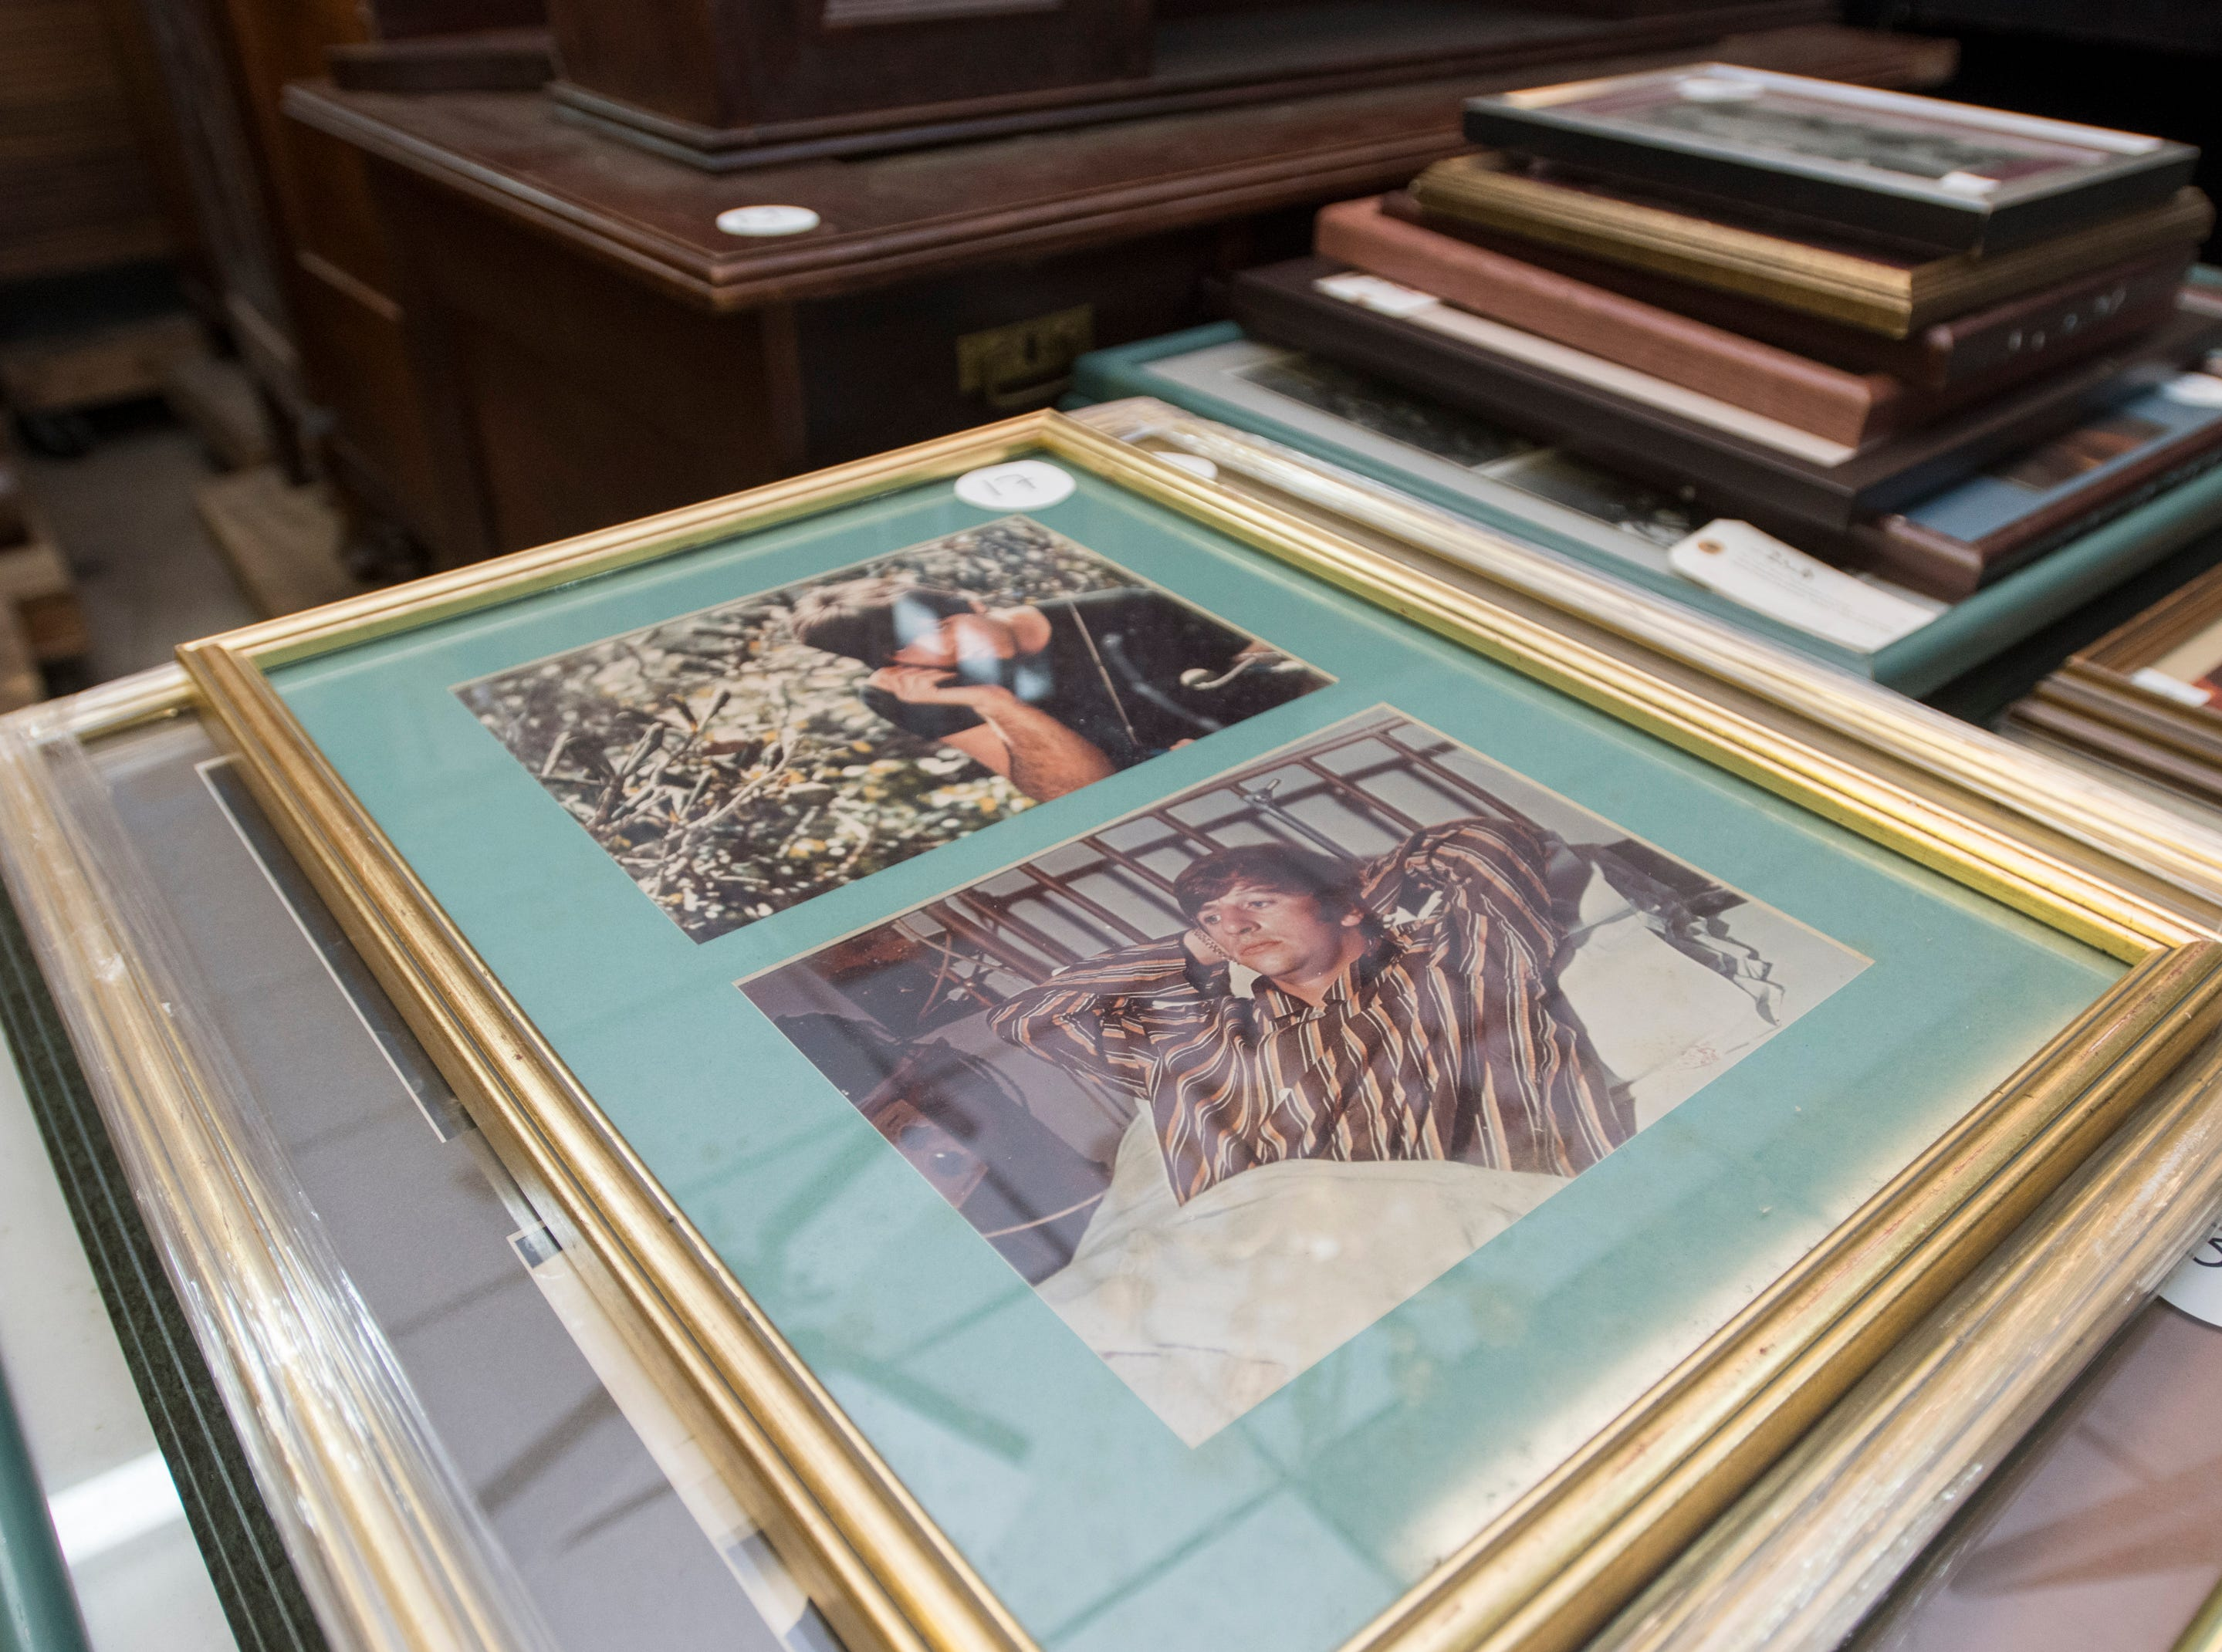 Original Beatles photographic prints at Garth's Auction & Antiques on Navy Boulevard in Pensacola on Wednesday, November 28, 2018.  These and other items will be up for sale during their auction on Friday, November 30th.